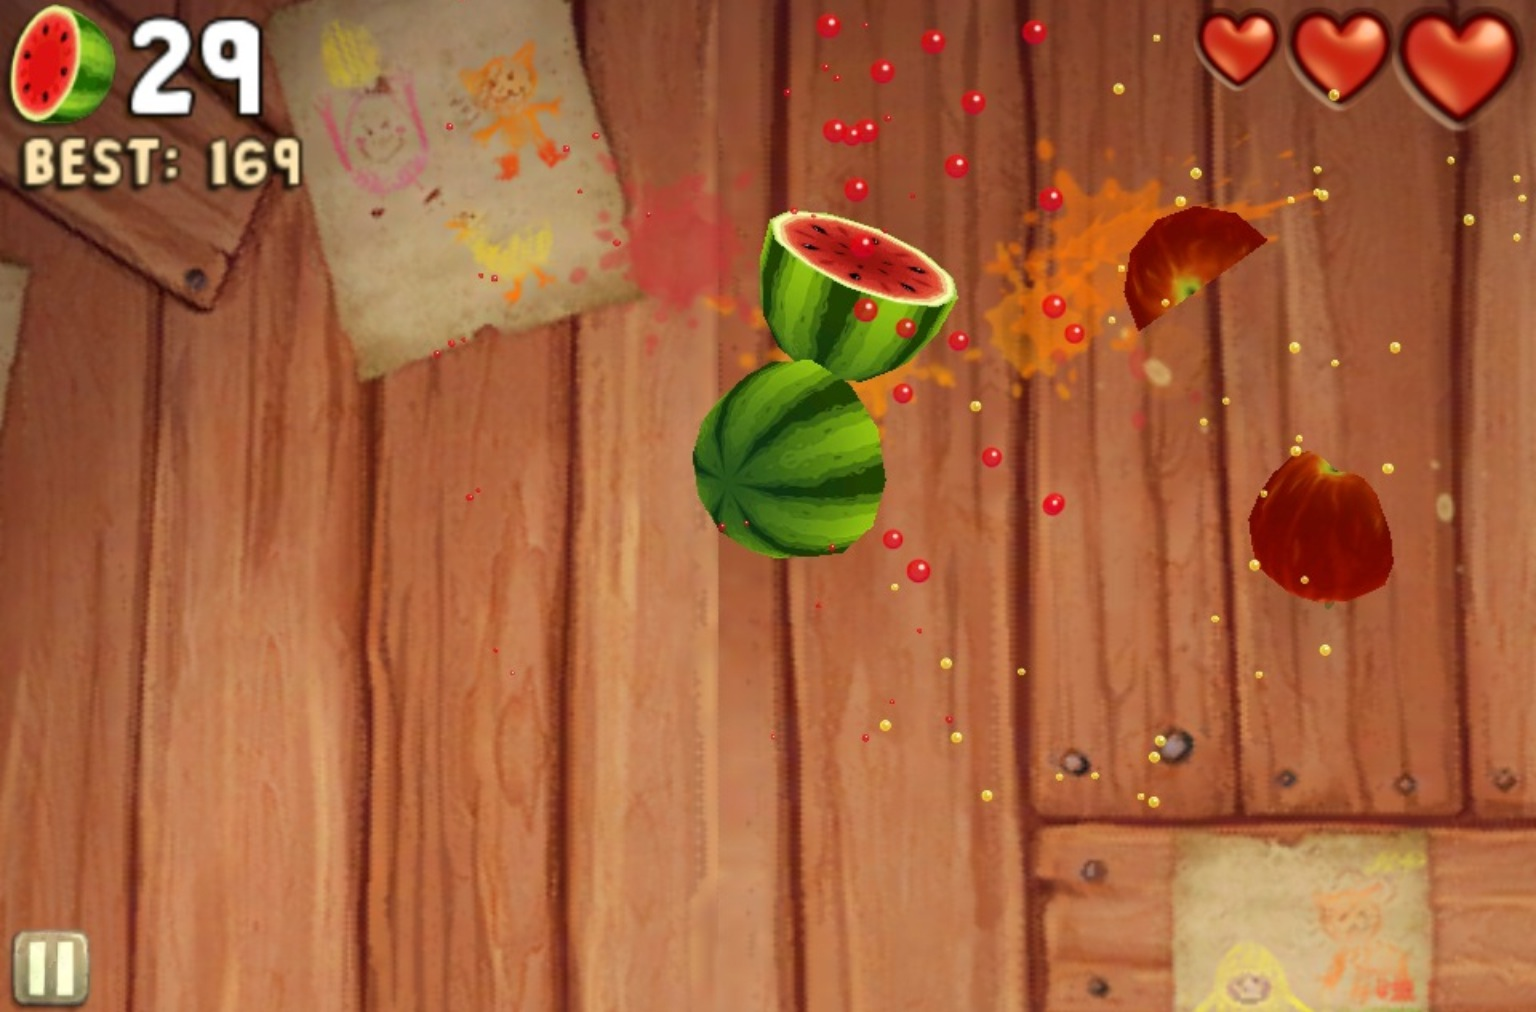 Fruit holy guacamole fruit ninja puss in boots gets new blades